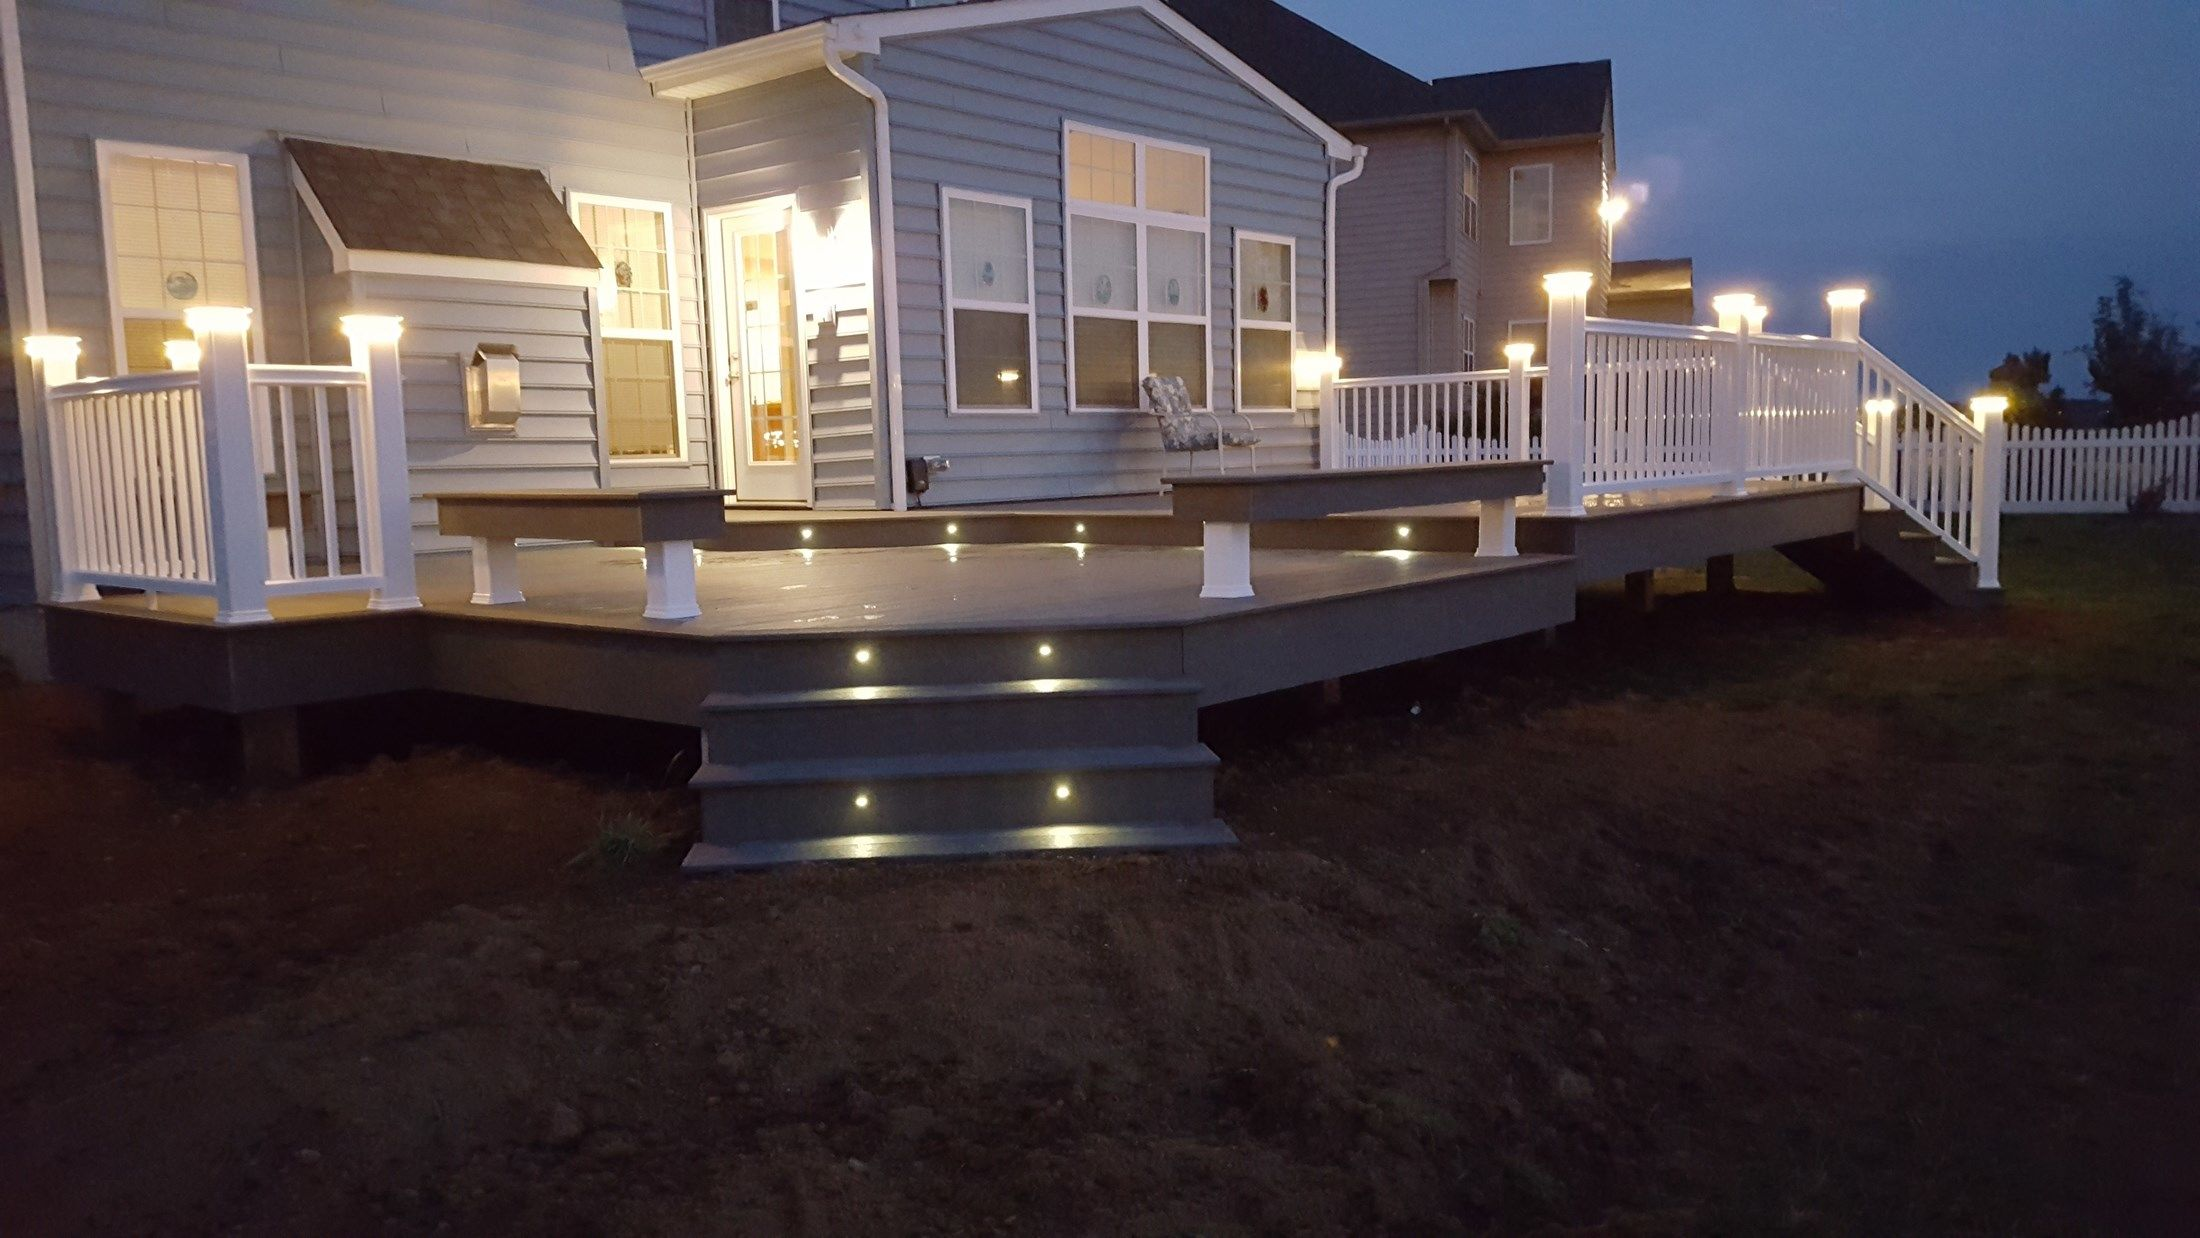 Timbertech Deck-Lighting & Benches - Picture 6507